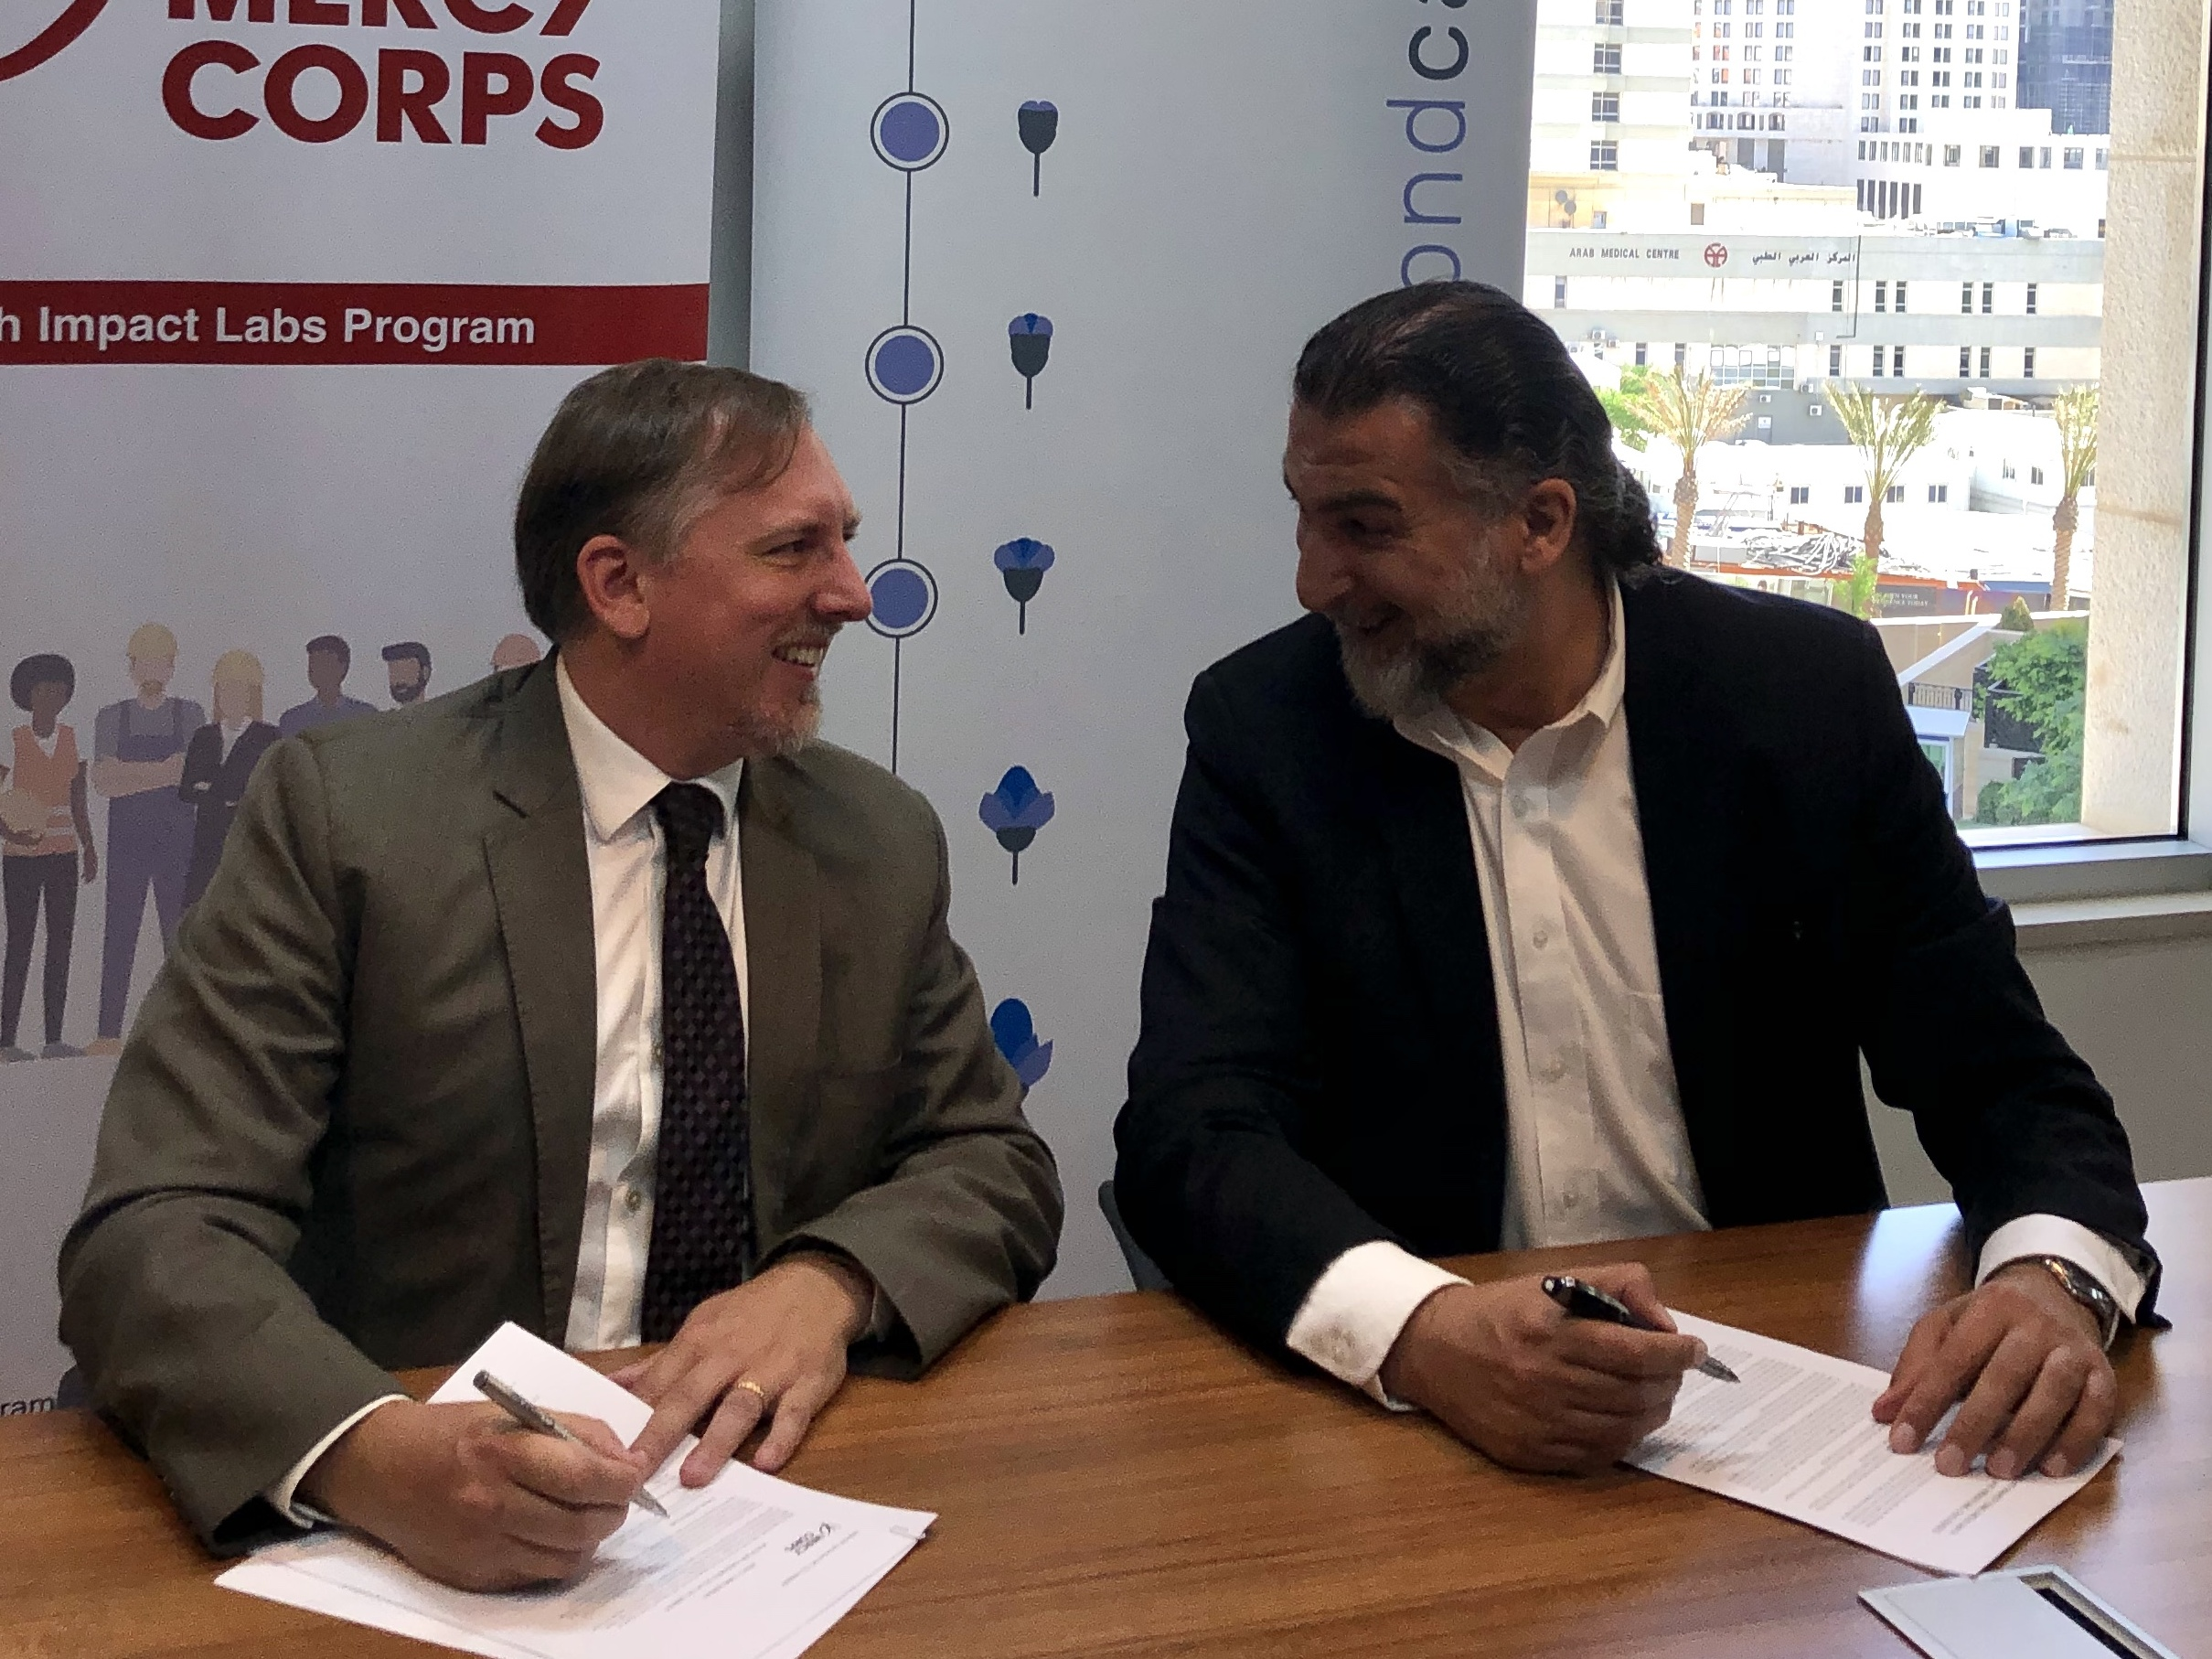 BeyondCapital and Mercy Corps to collaborate and invest in rising early-stage start-ups in Jordan